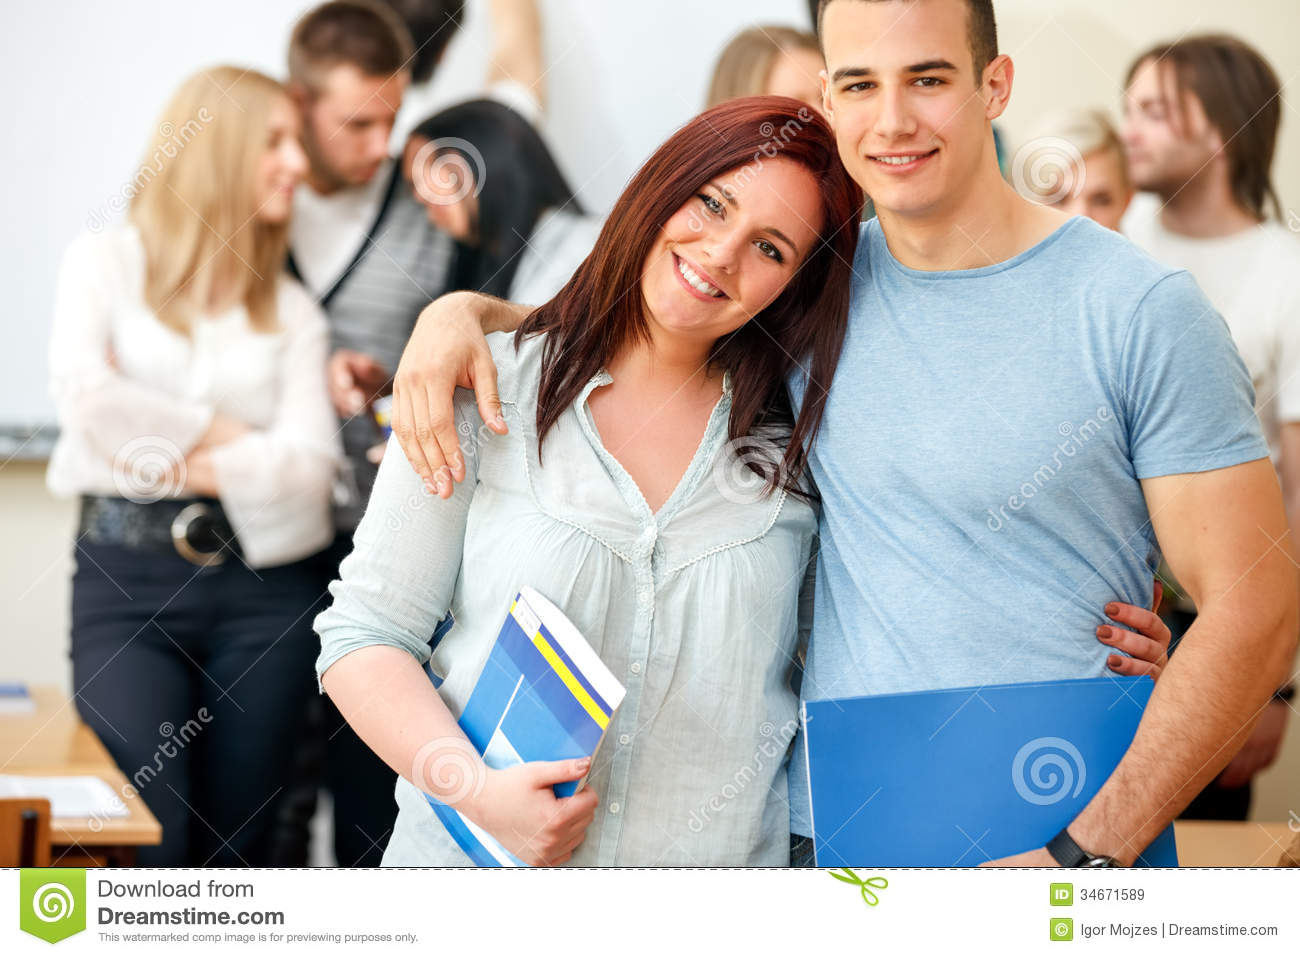 online dating university students Online dating services geared towards college life are great for students.